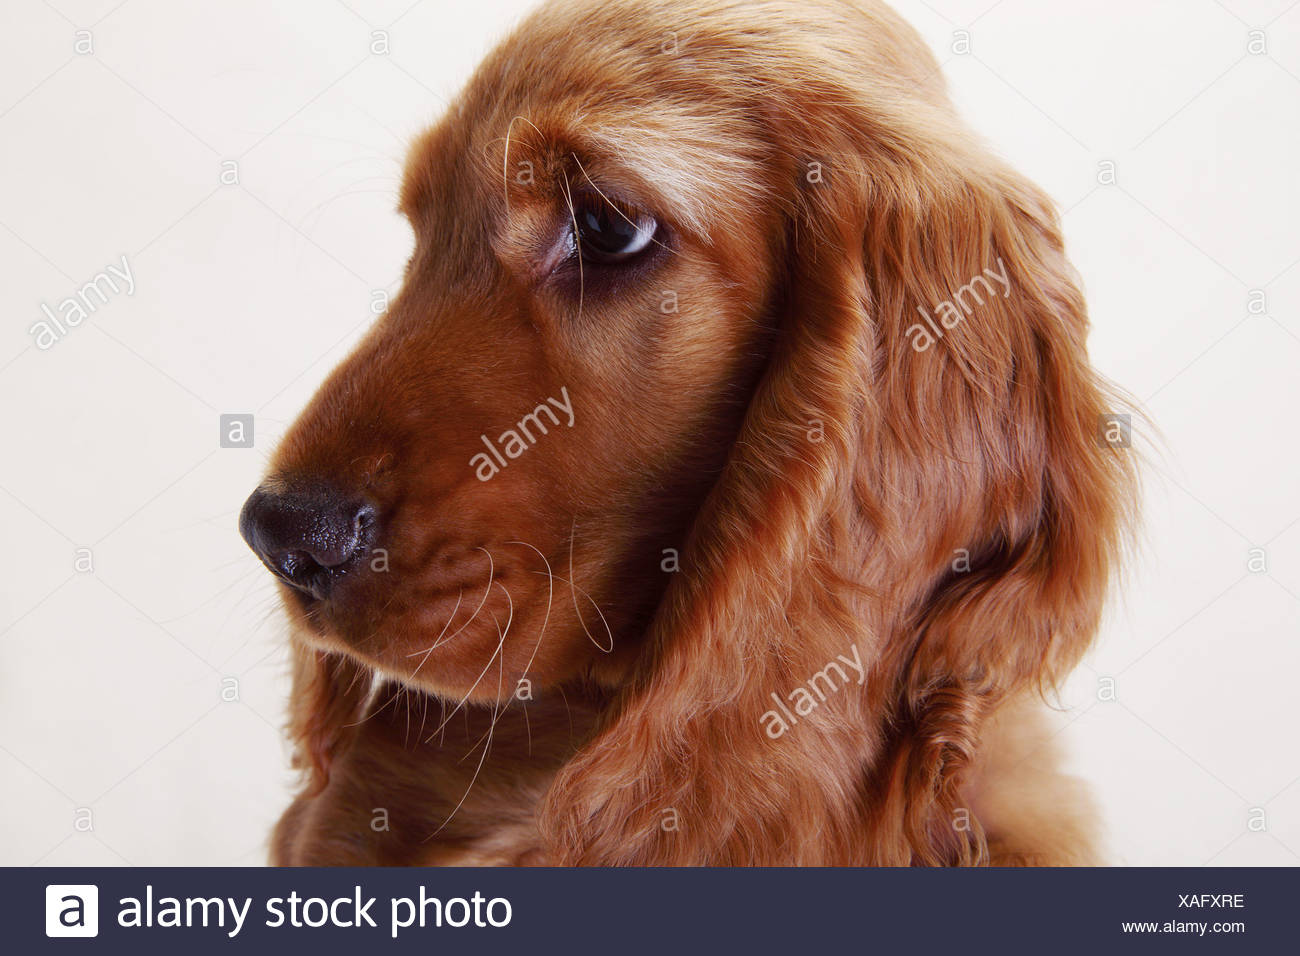 Un Cocker Spaniel, vista lateral Imagen De Stock